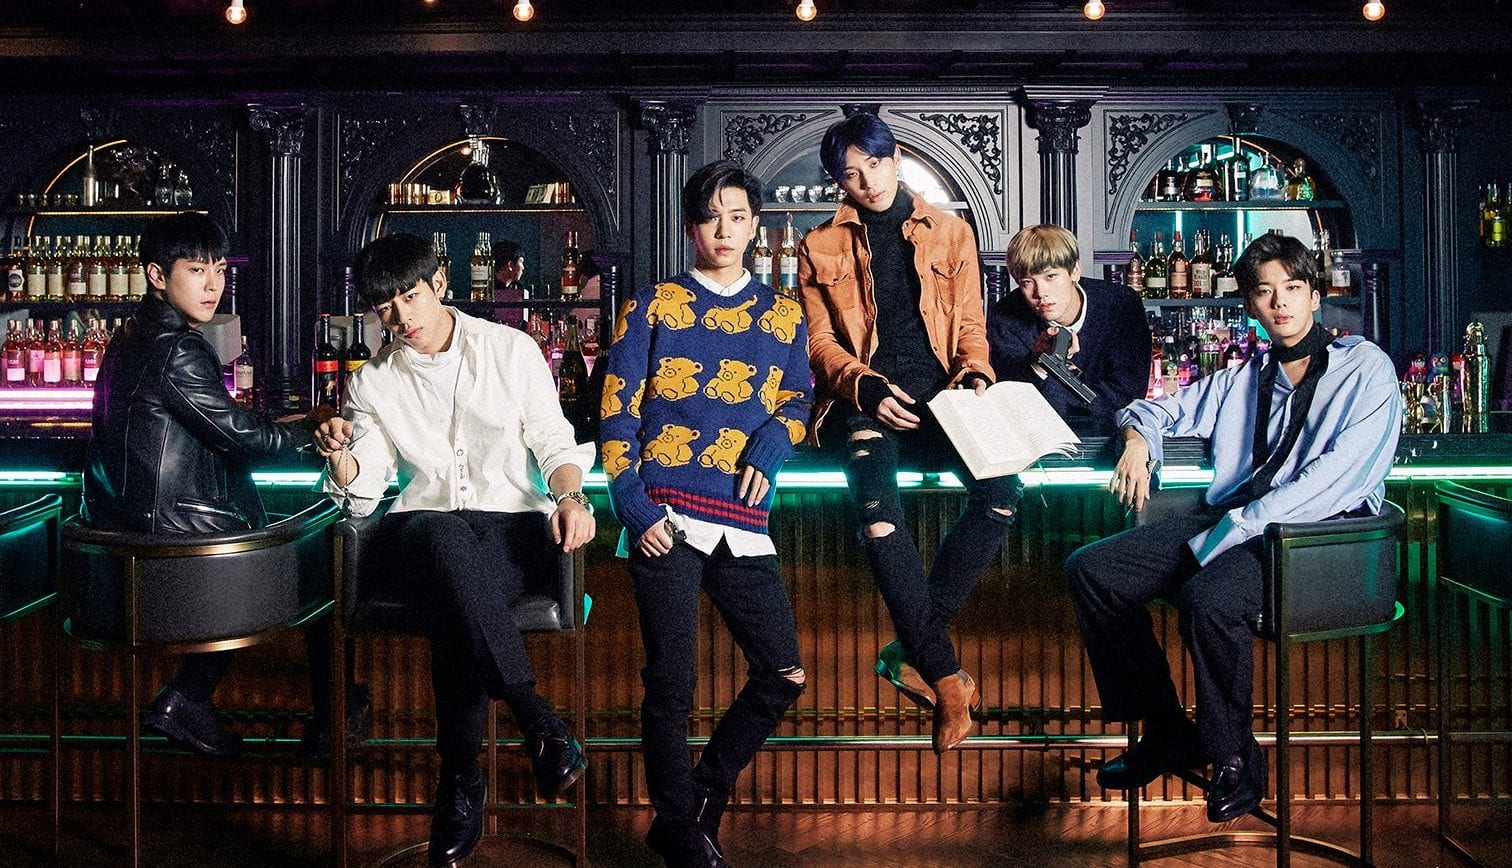 B.A.P Releases Puzzling New Teaser Image